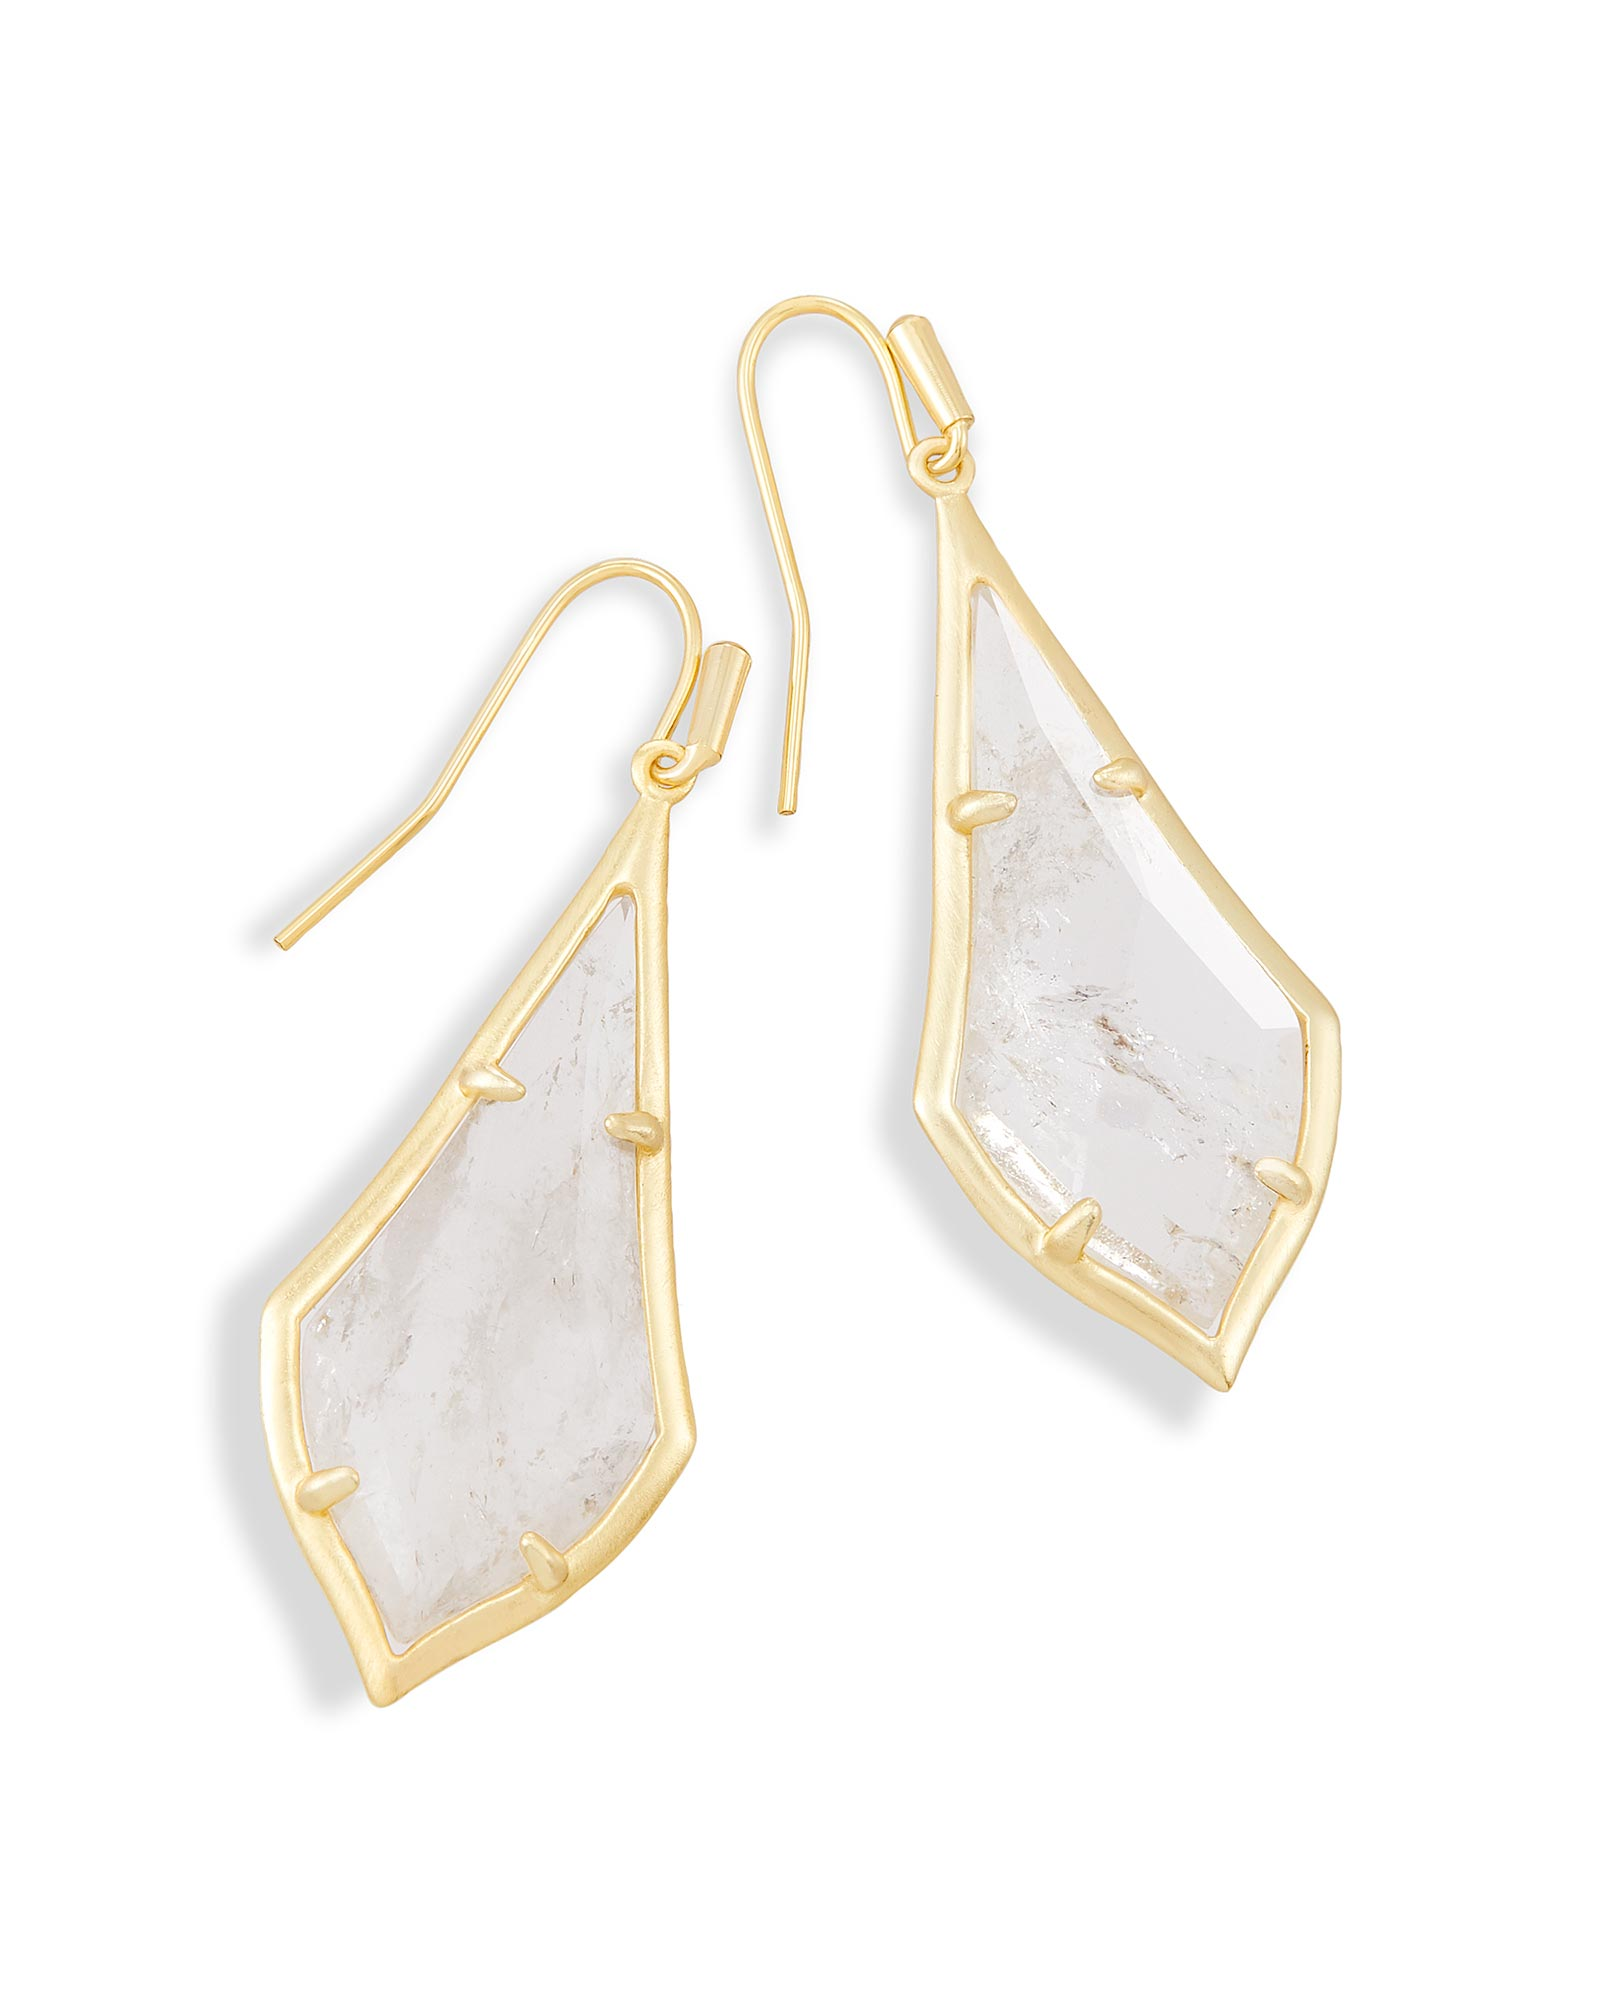 Olivia Drop Earrings in Rock Crystal